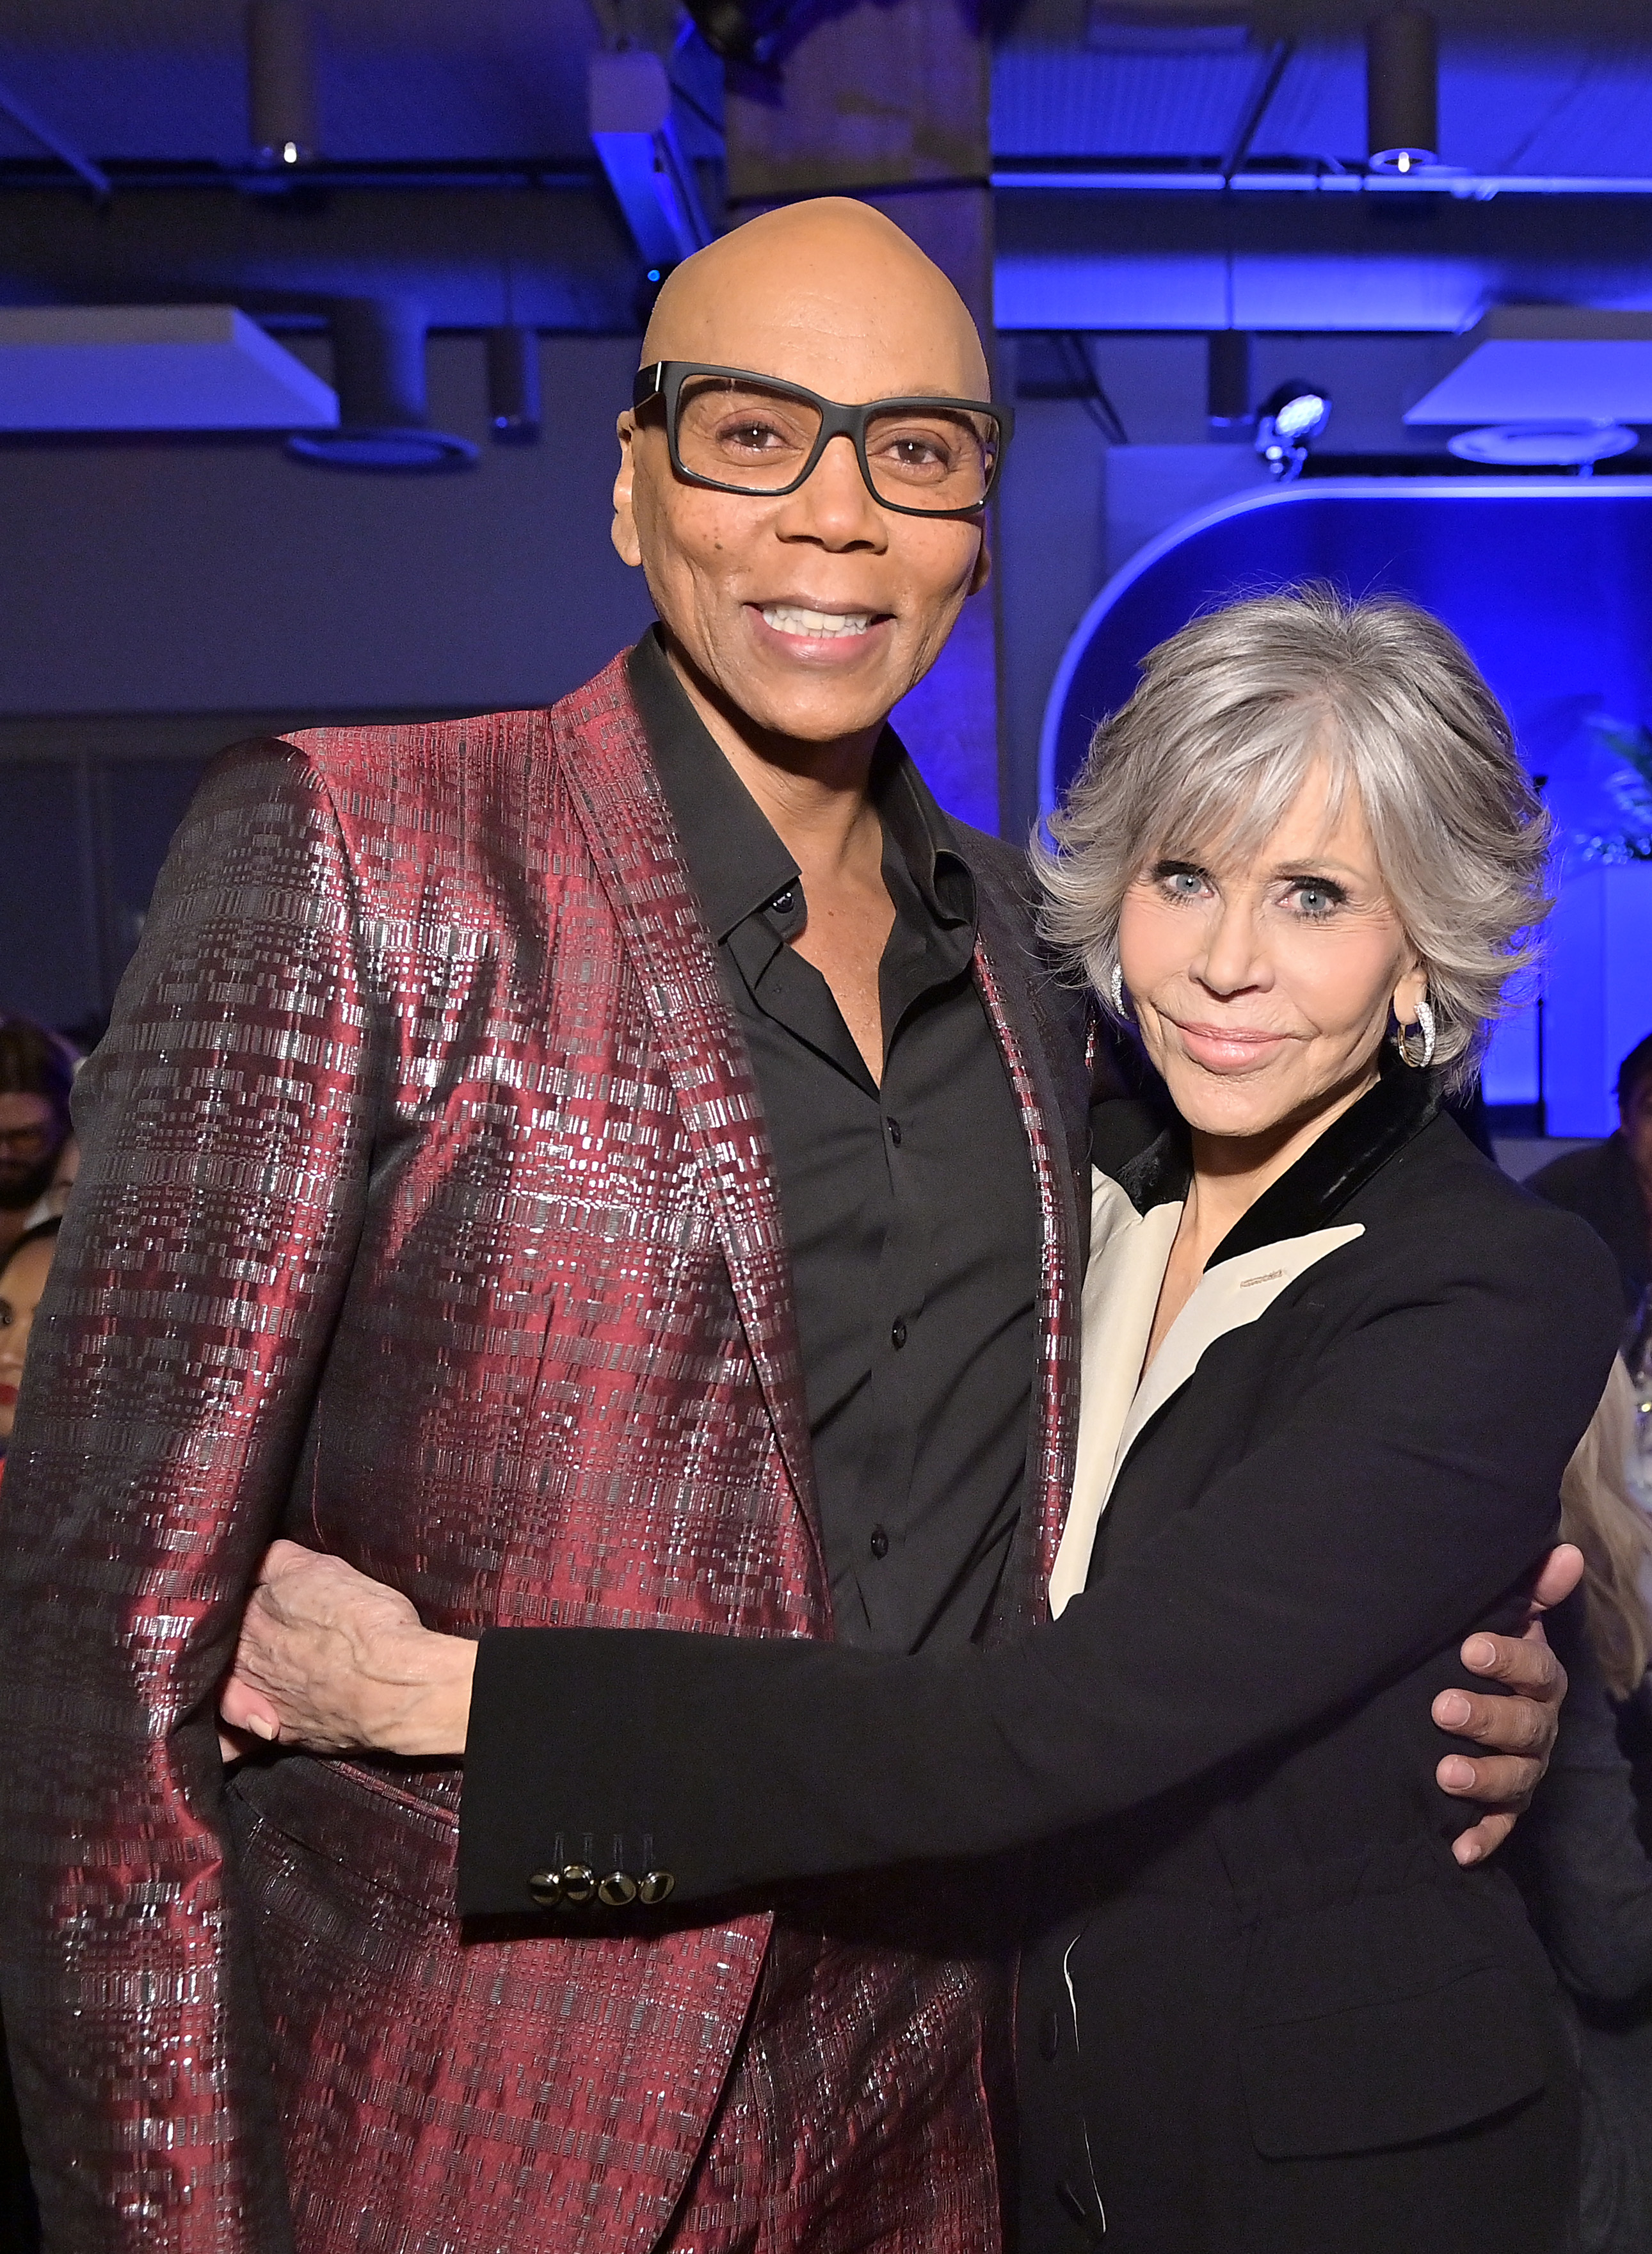 LOS ANGELES, CALIFORNIA - OCTOBER 06: (L-R) RuPaul and Honoree Jane Fonda attend the Women in Film Honors: Trailblazers of the New Normal sponsored by Max Mara, ShivHans Pictures, and Lexus at the Academy Museum of Motion Pictures on October 06, 2021 in Los Angeles, California. (Photo by Stefanie Keenan/Getty Images for Women In Film (WIF))